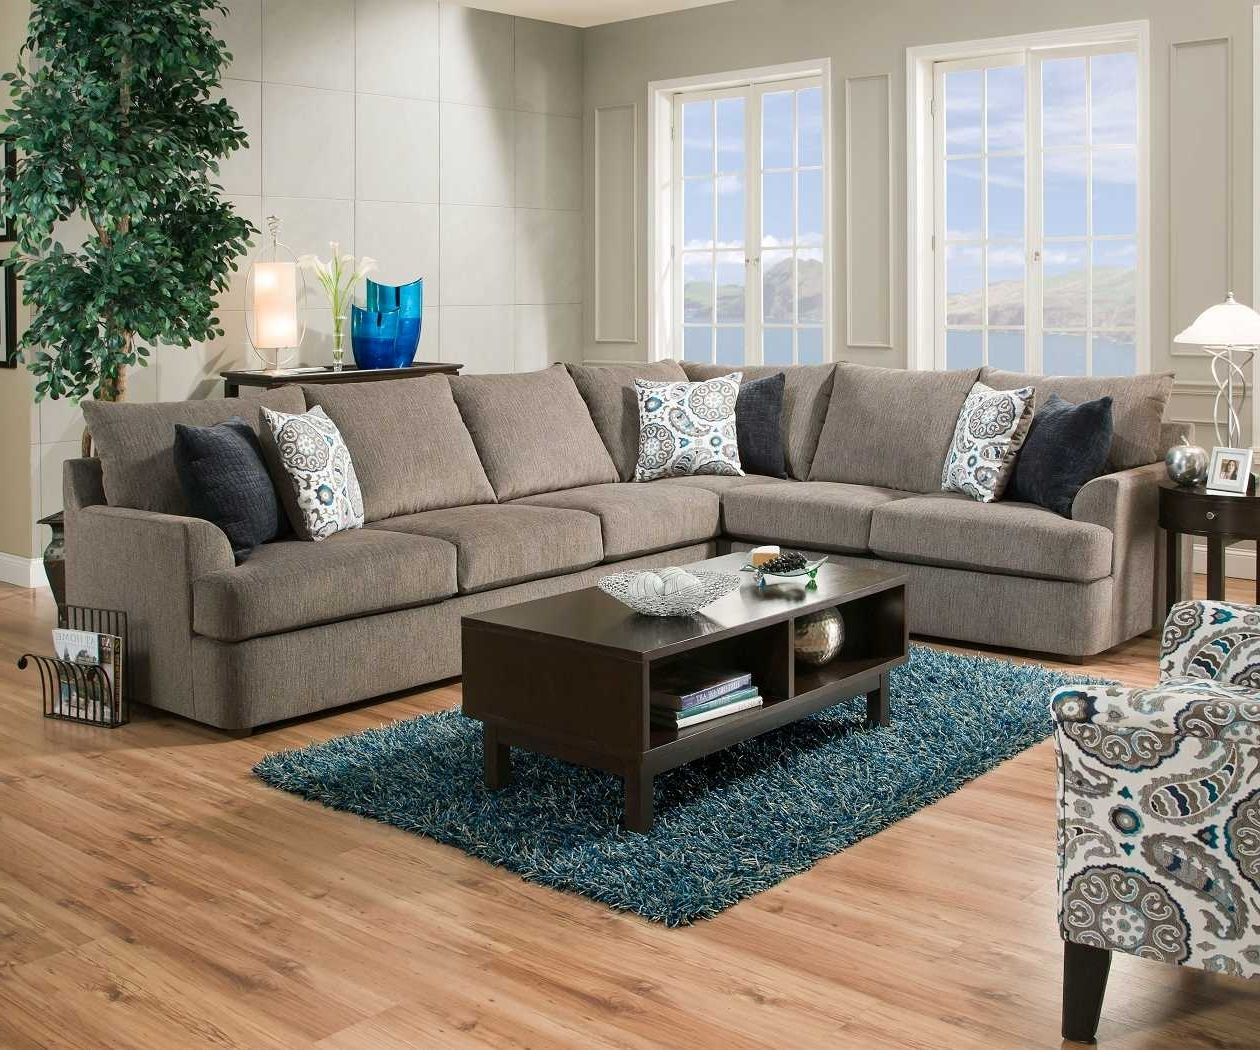 Most Recent Simmons Sectional Sofas Intended For United Simmons Grandstand 8540 Beautyrest Grey Sectional Sofa (View 13 of 15)